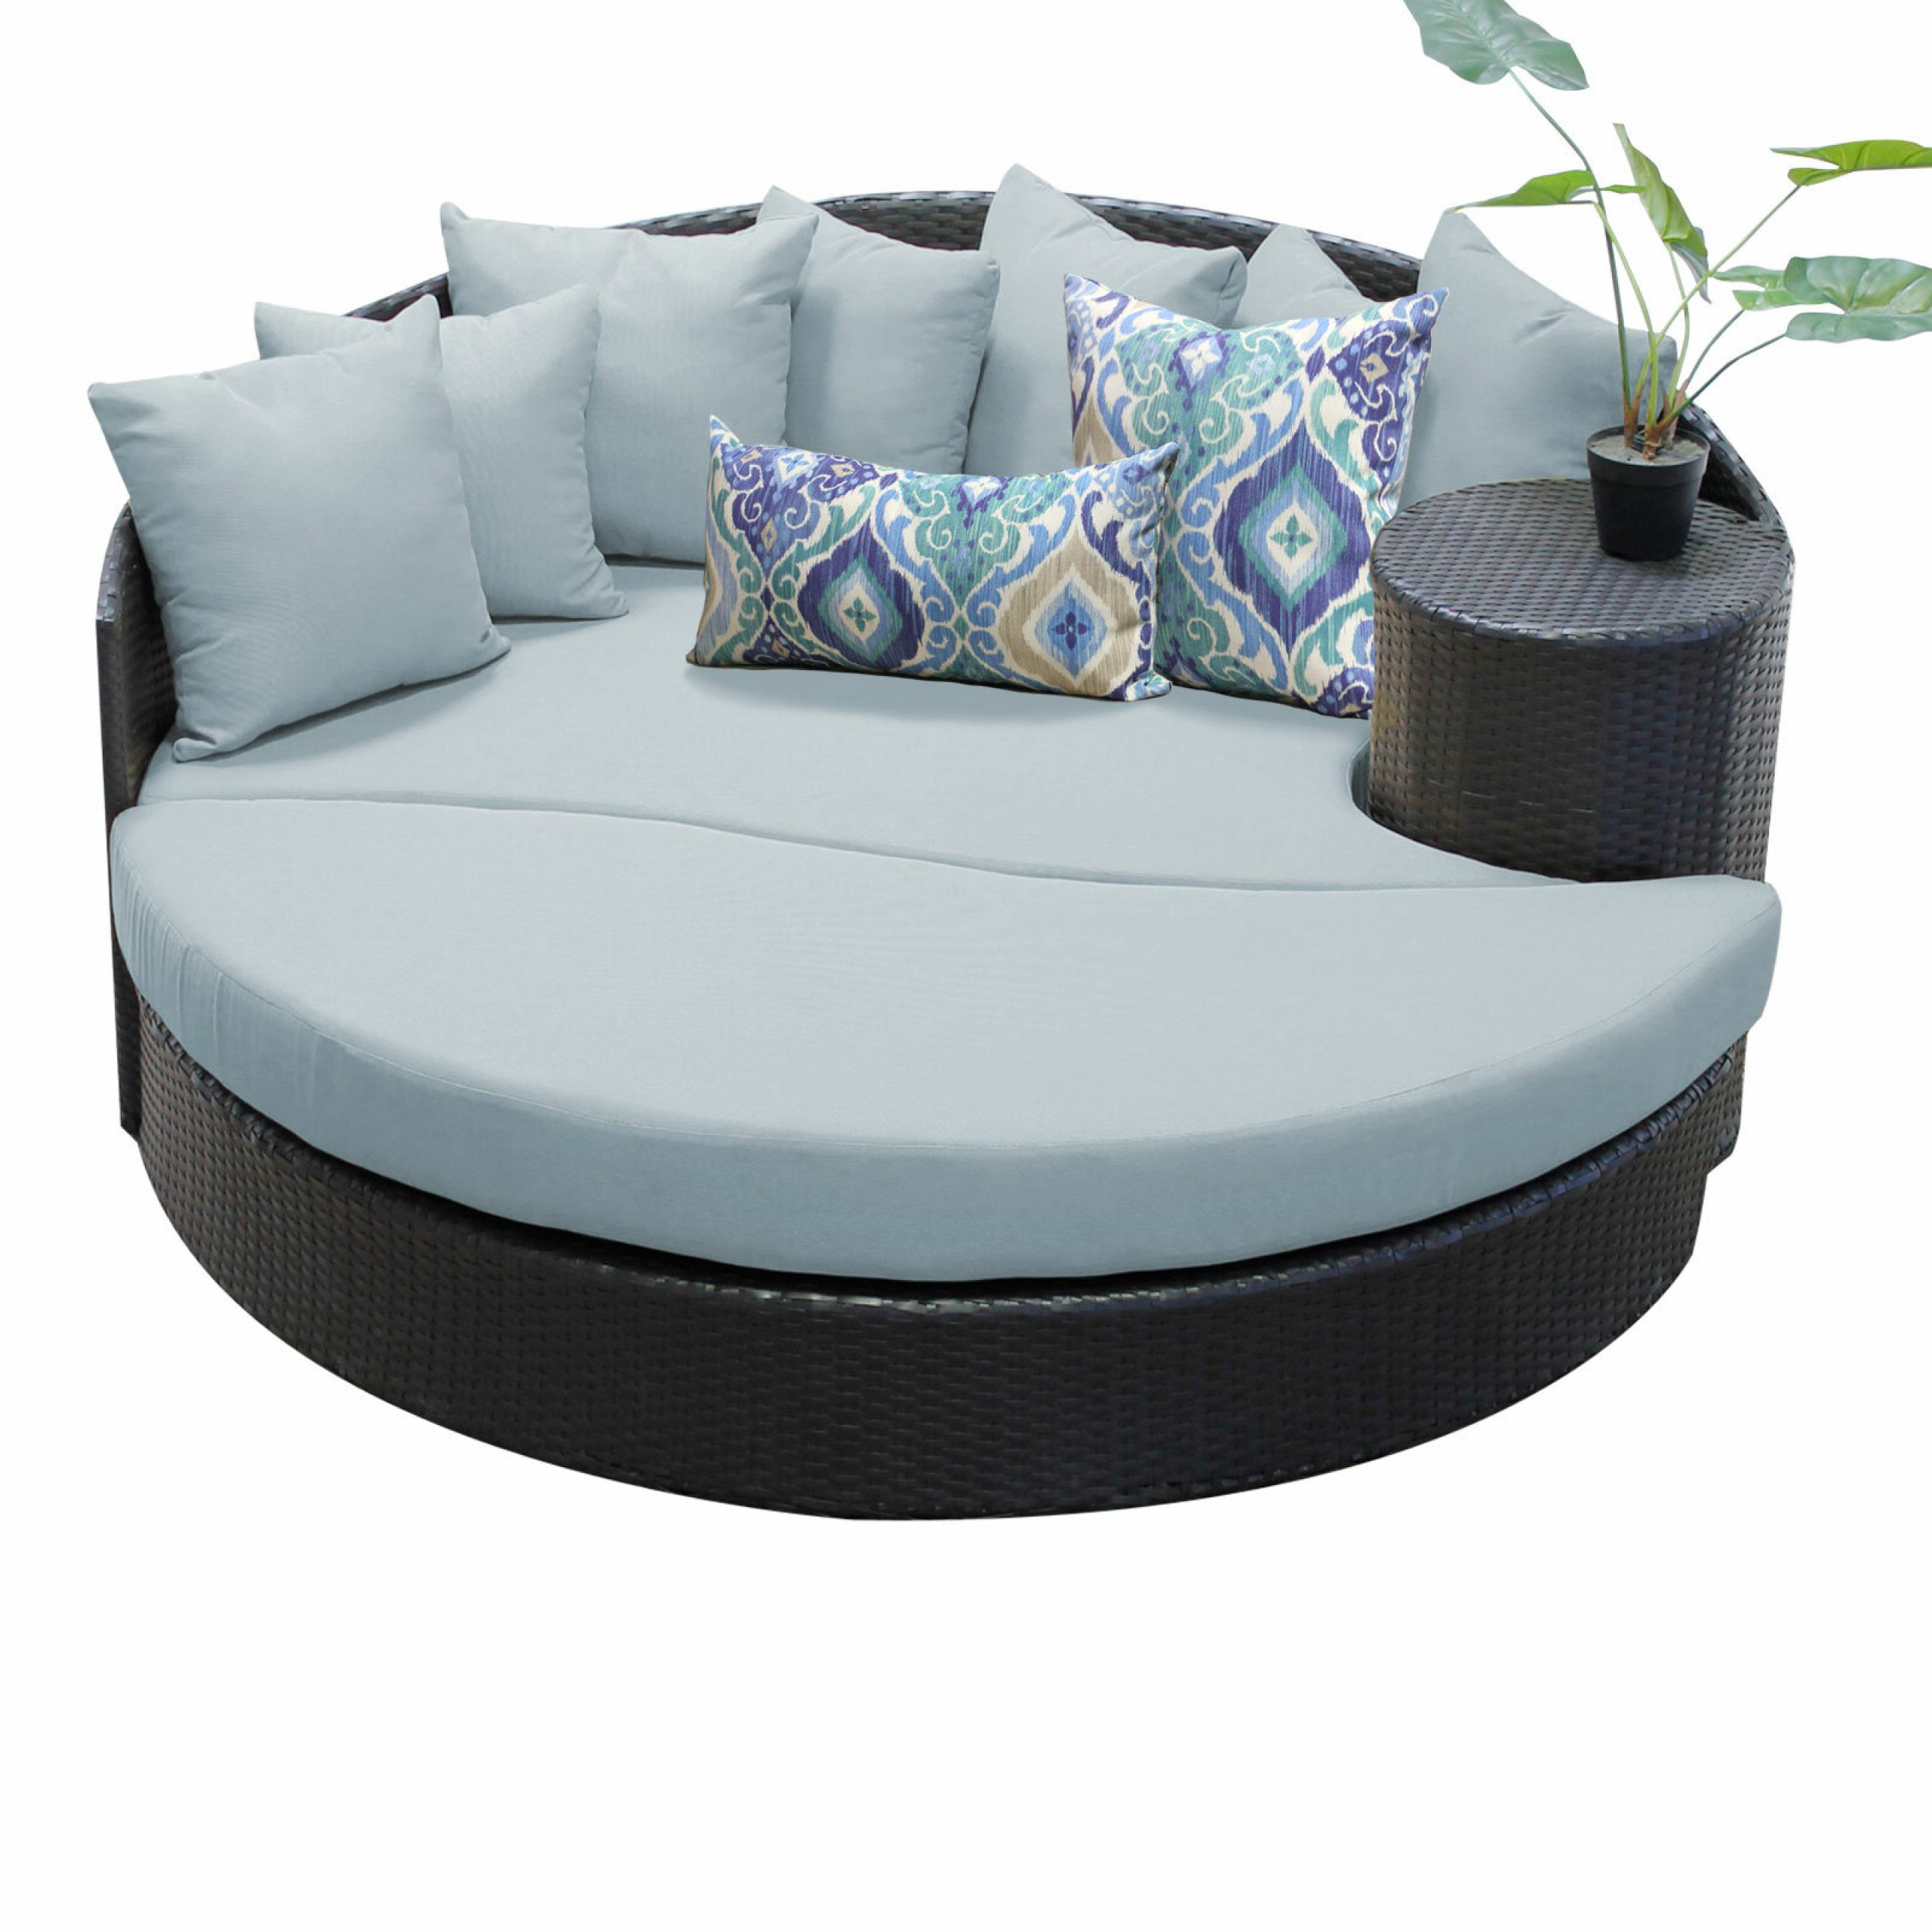 Tegan Patio Daybed With Cushion Inside Preferred Tegan Patio Sofas With Cushions (View 24 of 25)